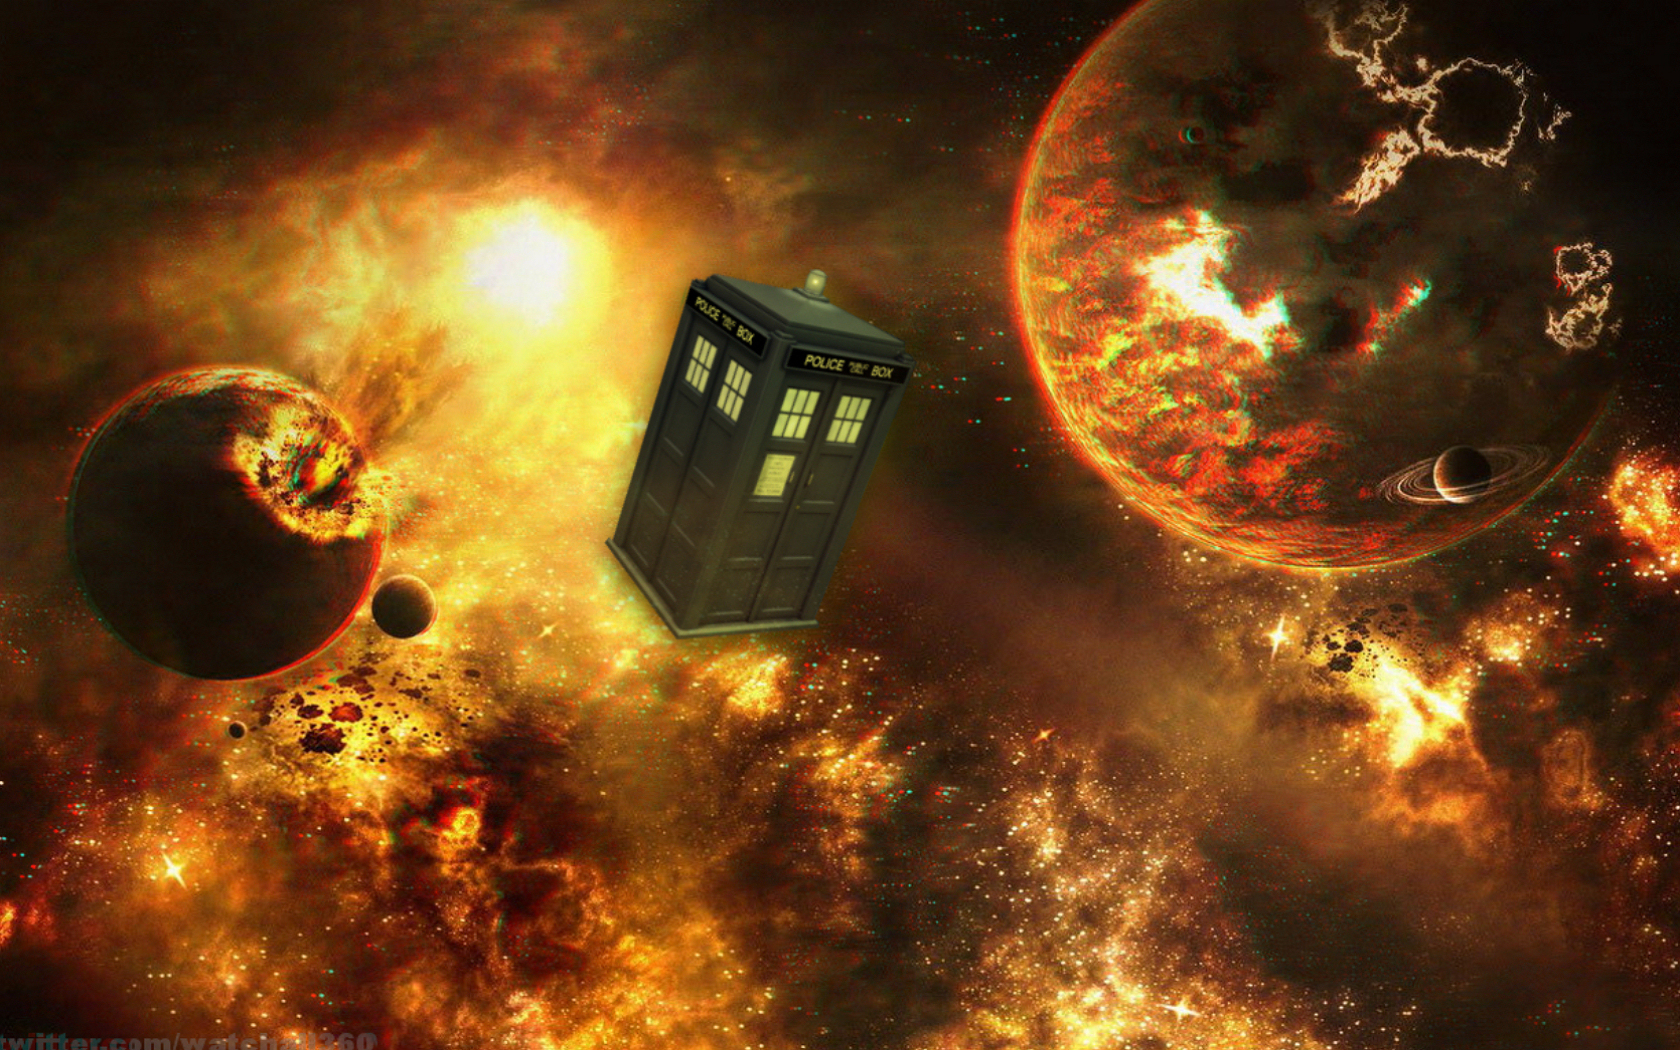 dr who Computer Wallpapers Desktop Backgrounds 1680x1050 ID 1680x1050